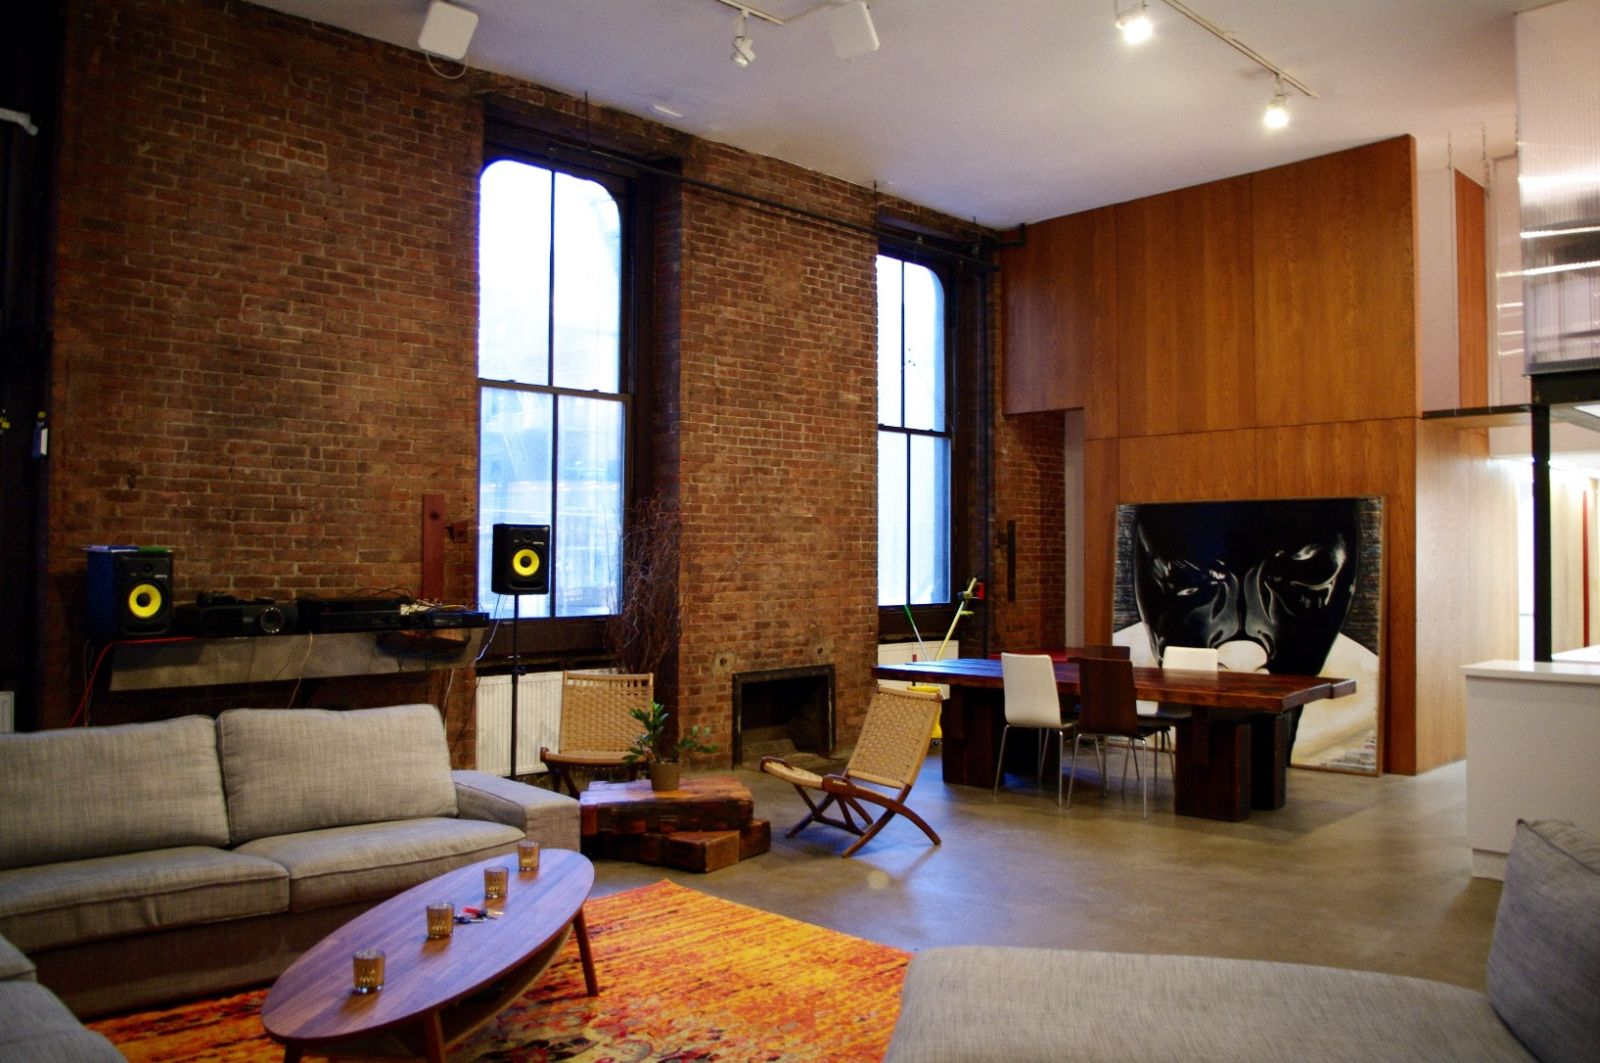 Splacer users can stage an event at this TriBeCa loft. Photo: courtesy